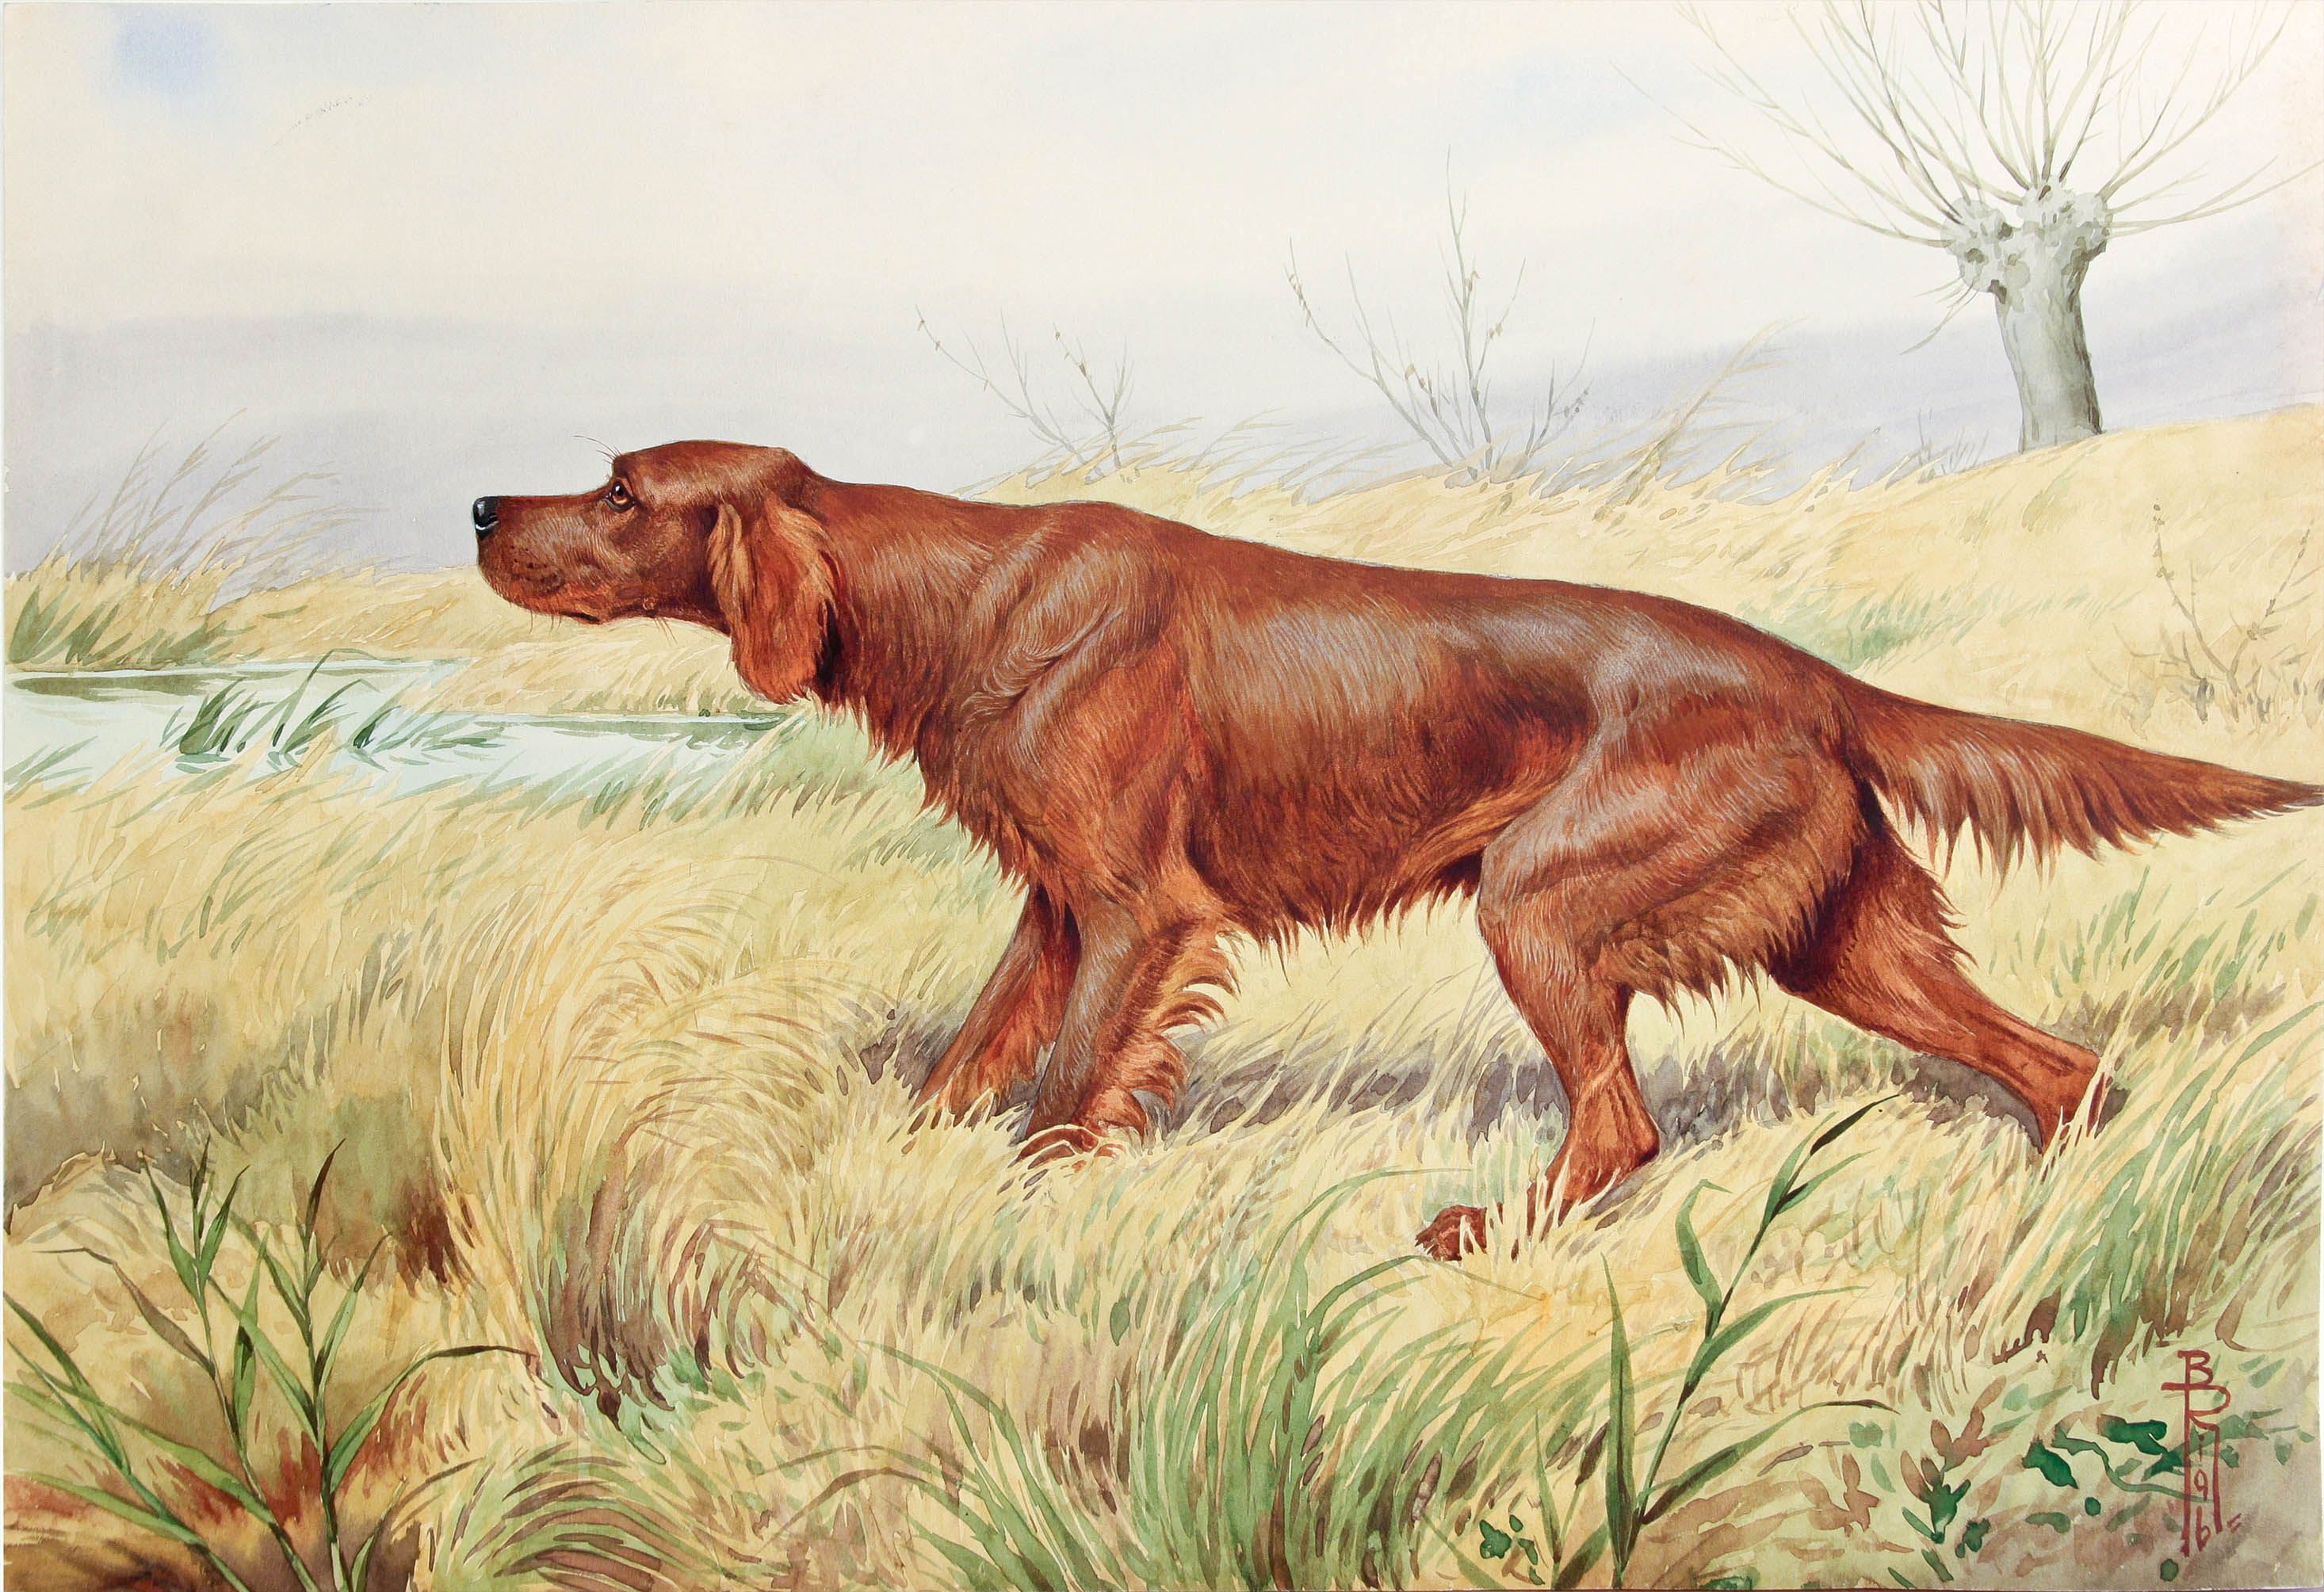 Click to see full size: Watercolour of an Irish Setter in marsh reeded lake side setting by Boris Stefanovitch Riabouchinsky